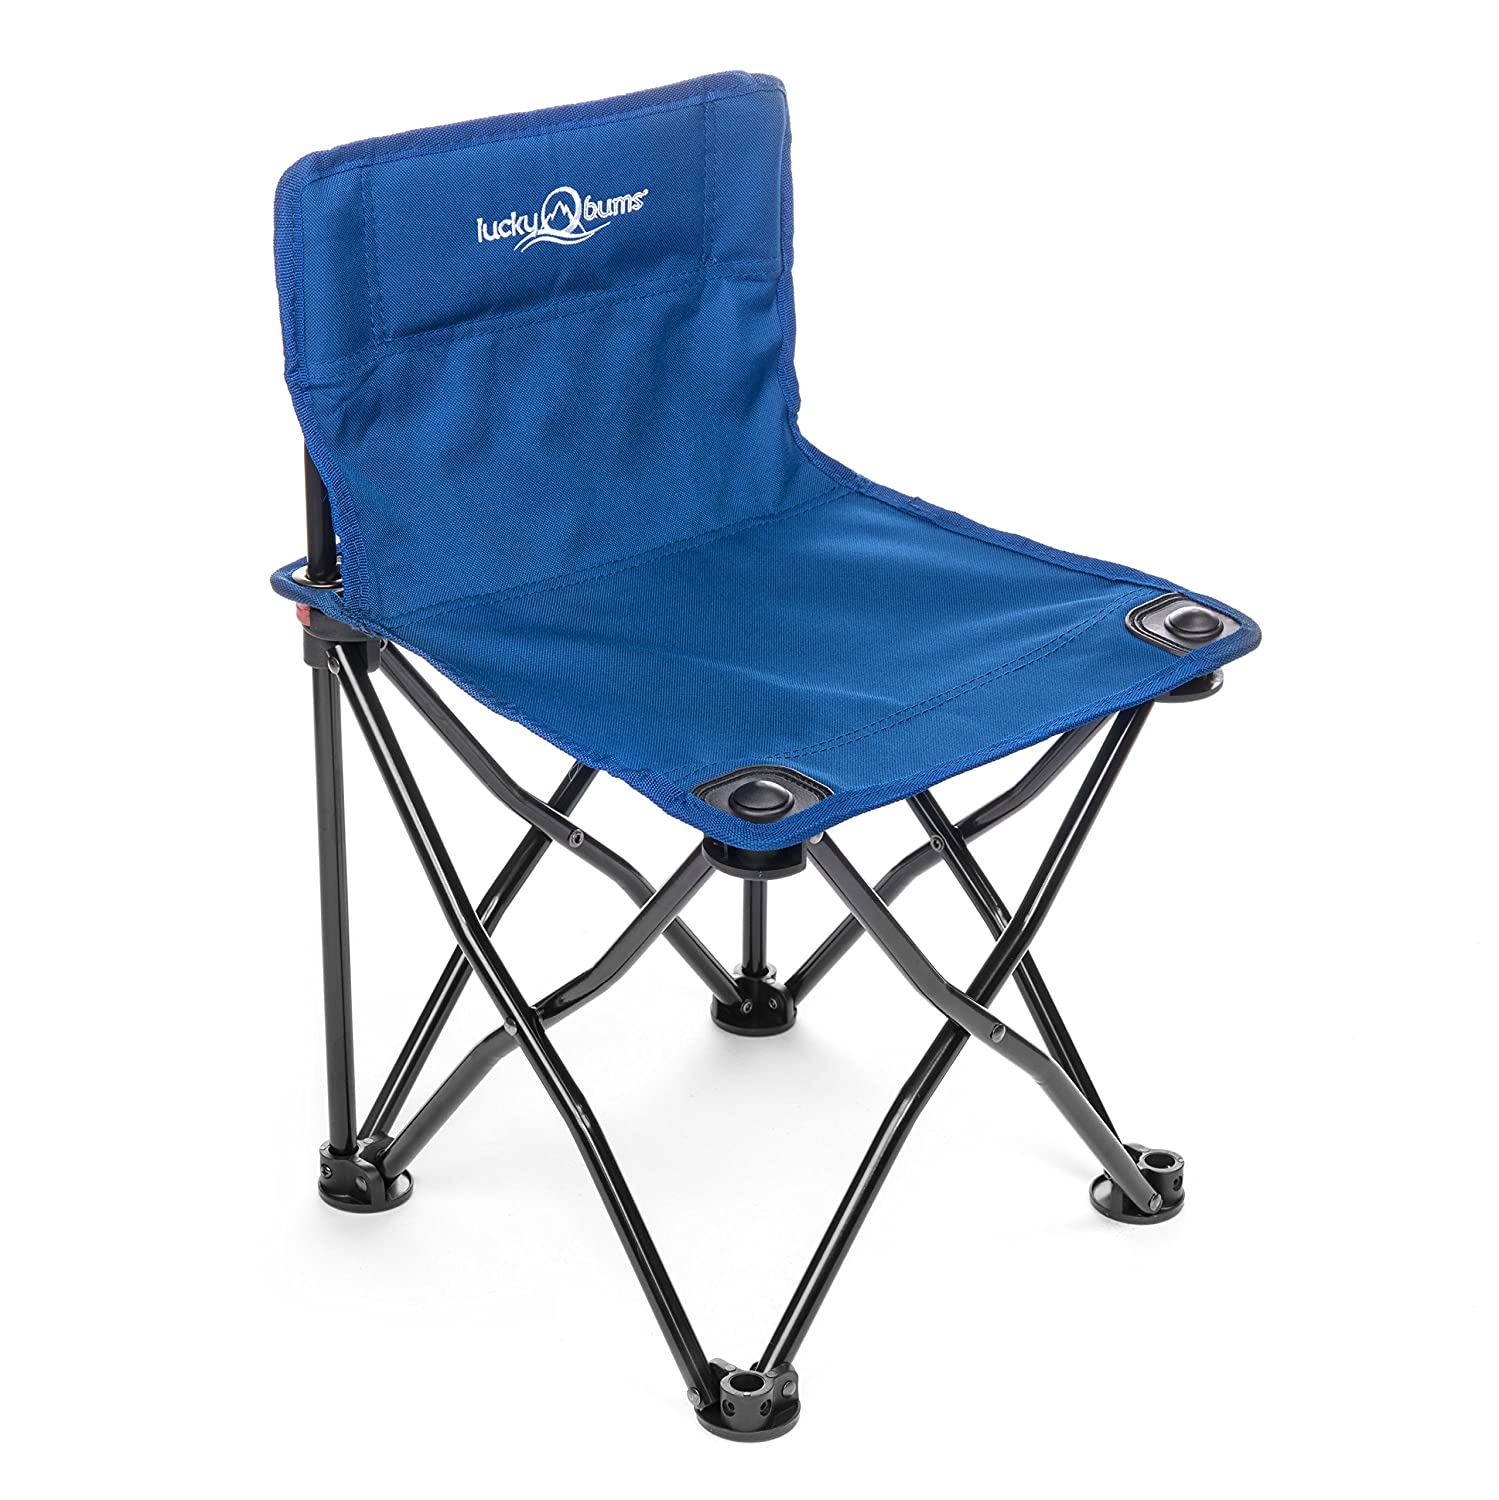 Fabulous Lucky Bums Quick Camp Chair Creativecarmelina Interior Chair Design Creativecarmelinacom